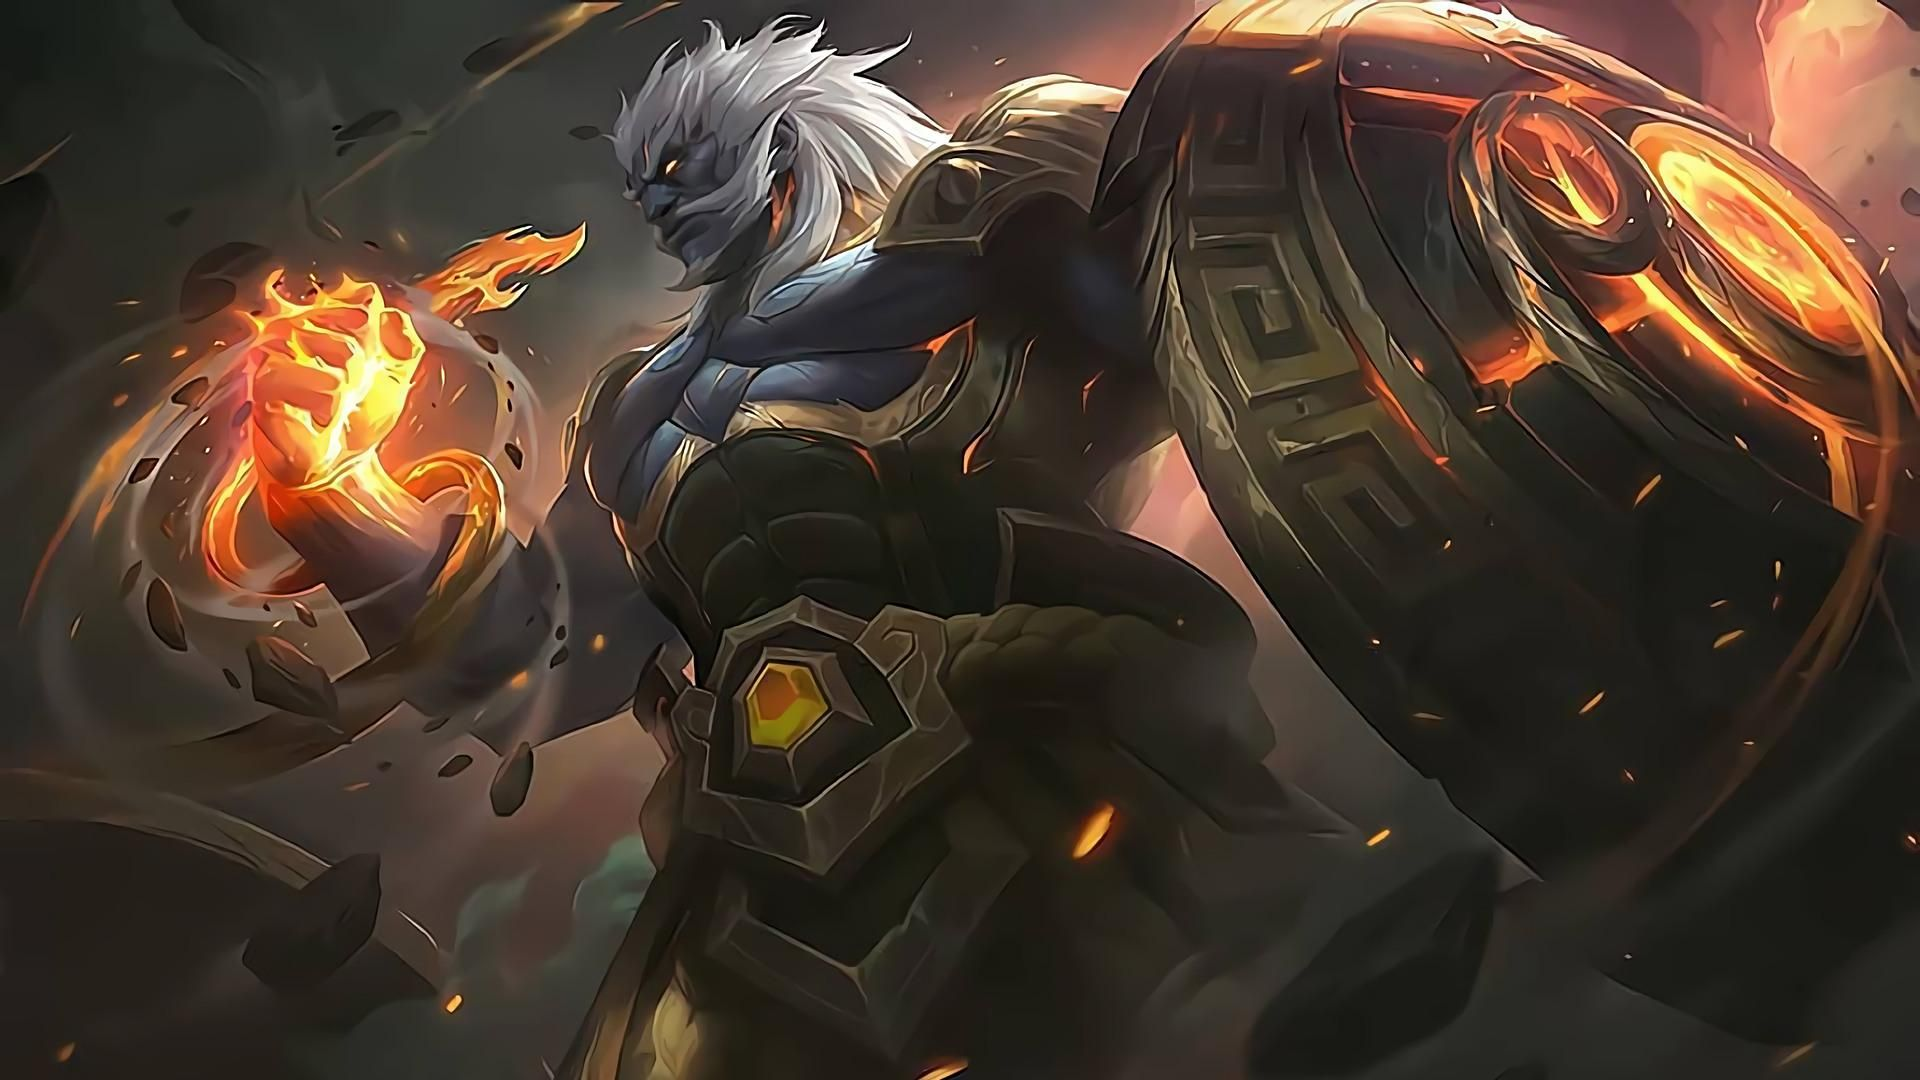 Baxia The New Over Powered Tank Advance Server Patch Note 1 4 32 Analysis In 2020 Mobile Legends Mobile Legend Wallpaper Alucard Mobile Legends